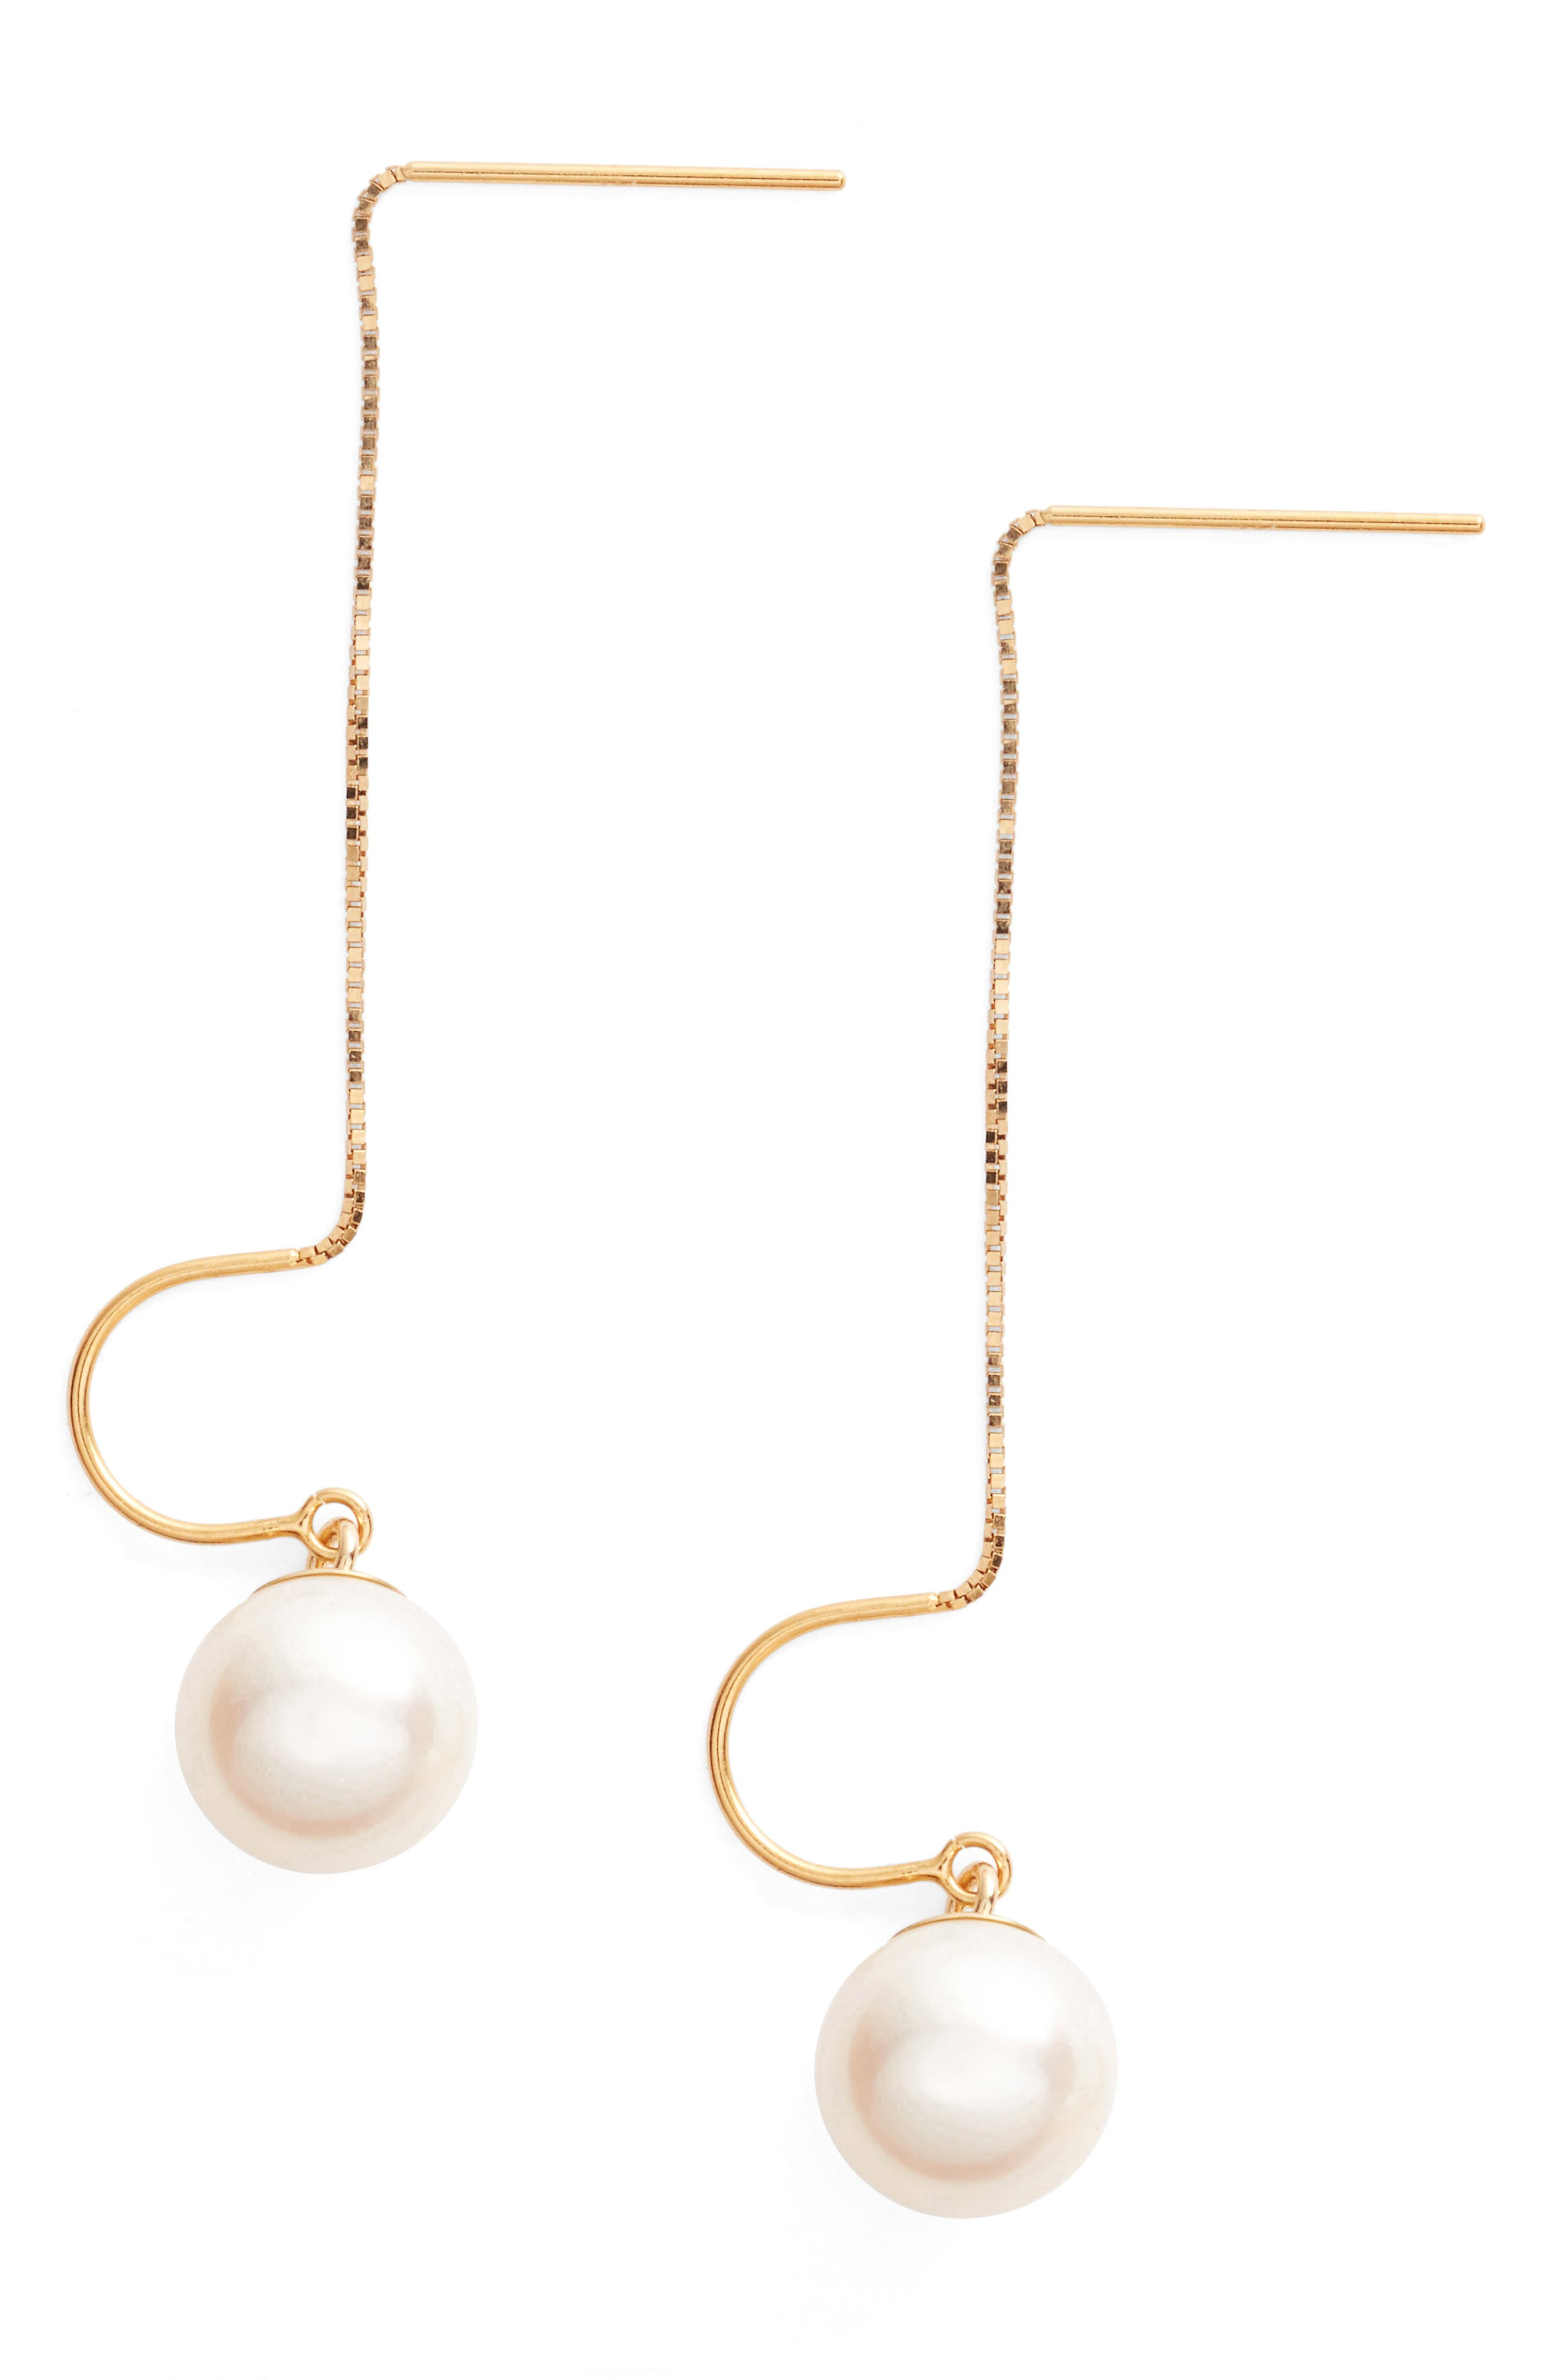 Pearl Threader Earrings,                         Main,                         color, YELLOW GOLD/ WHITE PEARL